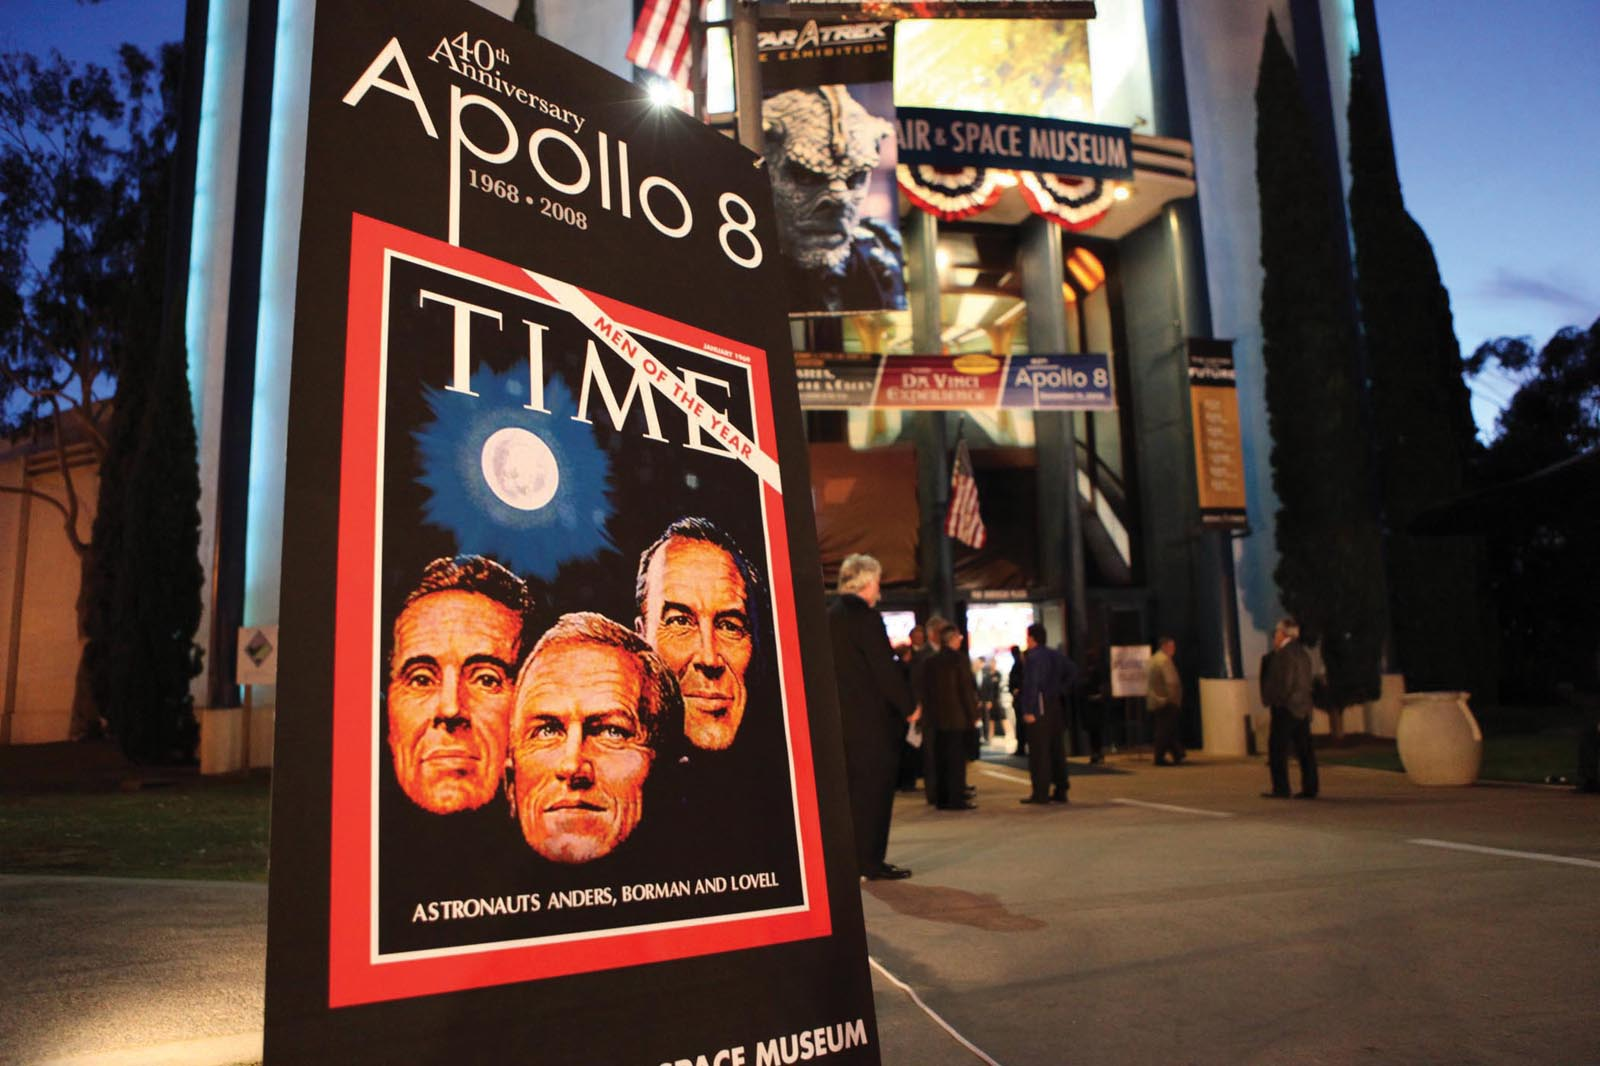 The 40th Anniversary of Apollo 8